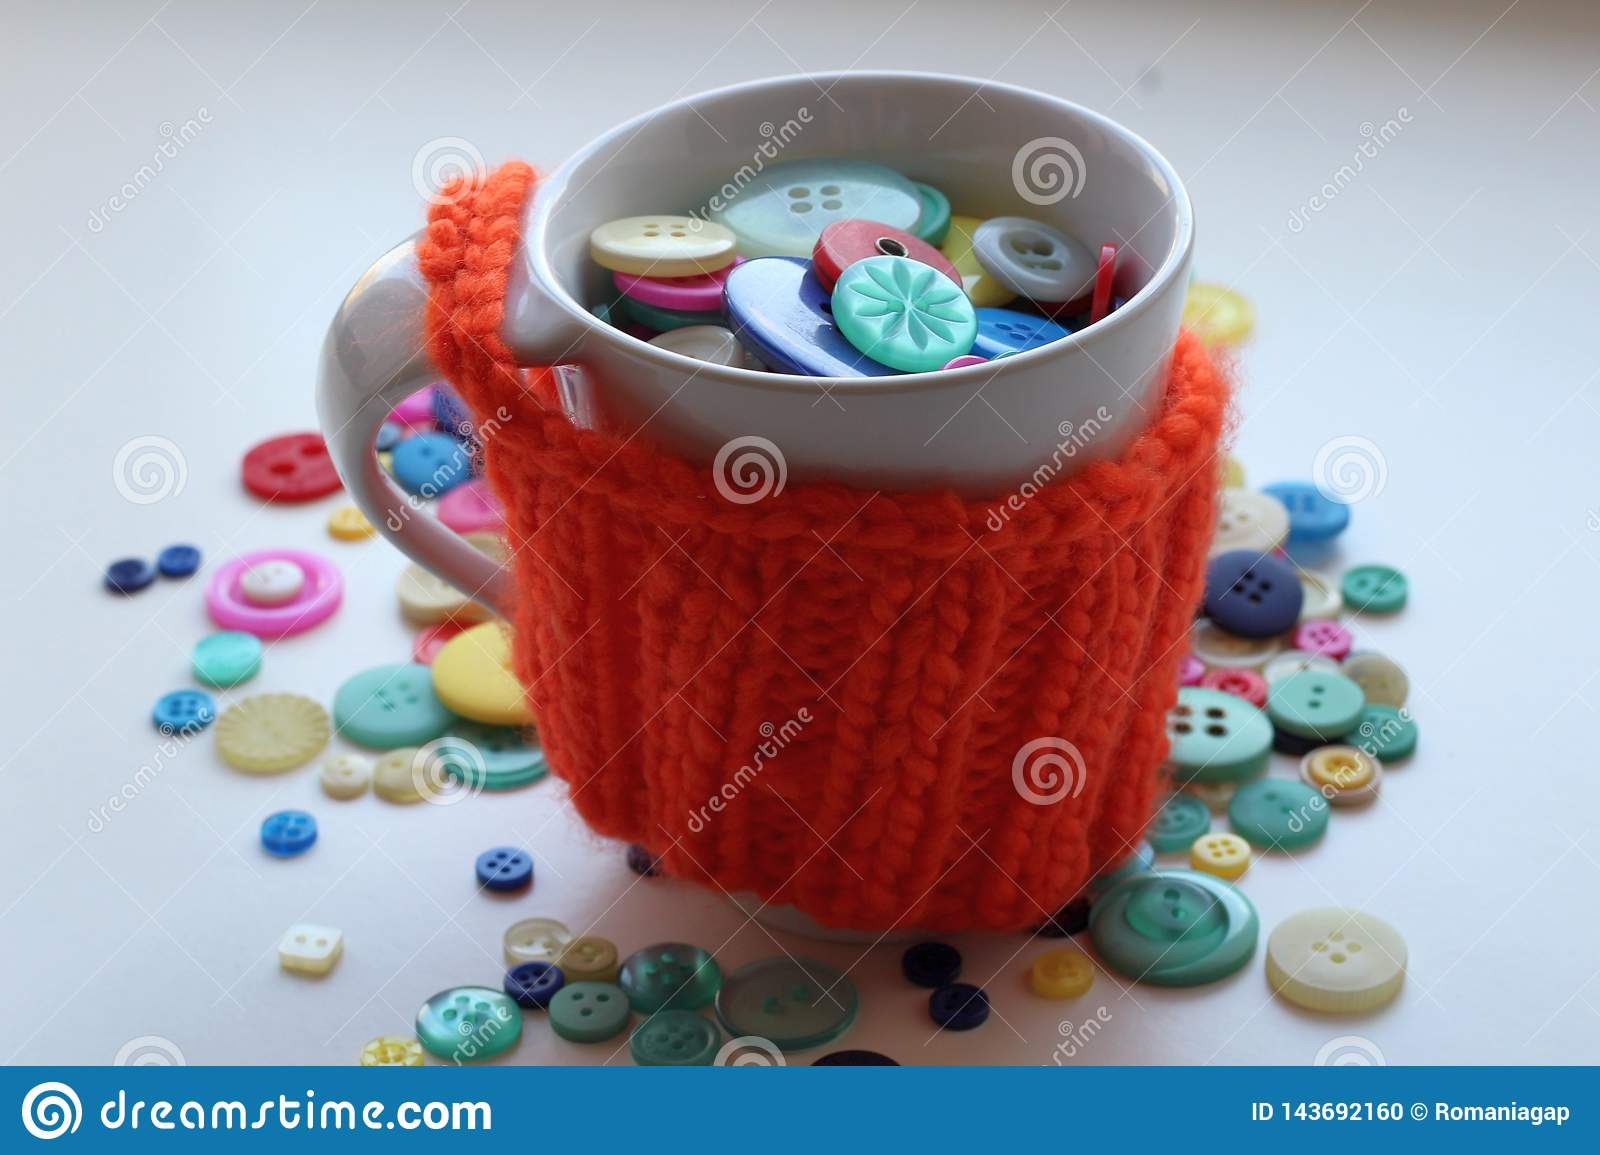 Multicolored buttons in a white cup wrapped in a knitted and warm orange case